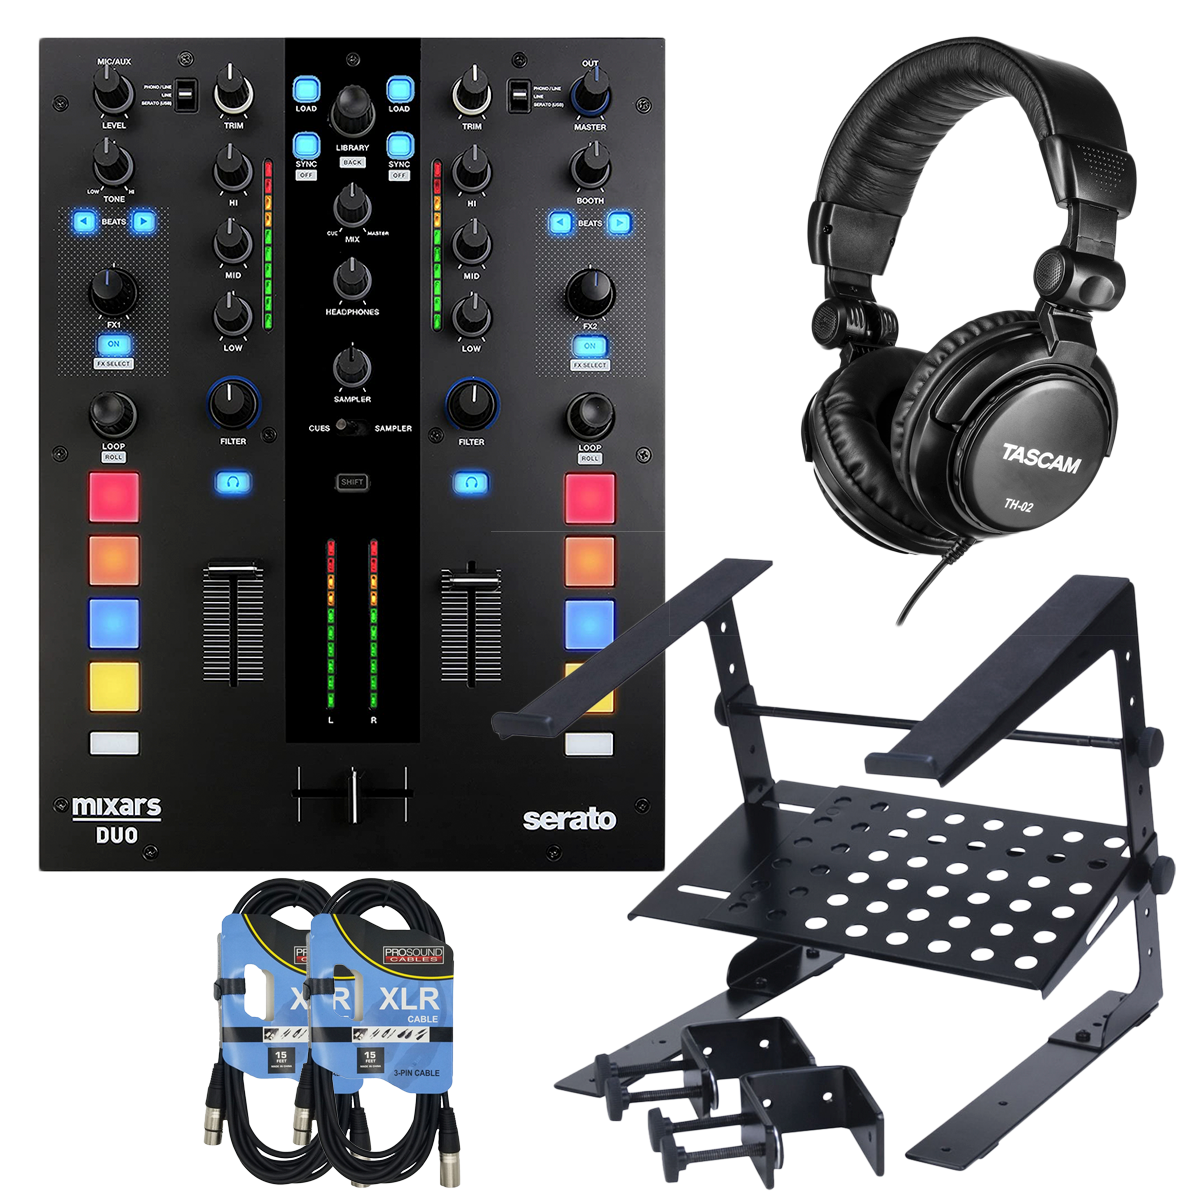 -3Mixars Duo MKII 2-Channel DJ Battle Mixer - Tascam TH02 - Laptop Stand - (2) XLR Cables - $599.99